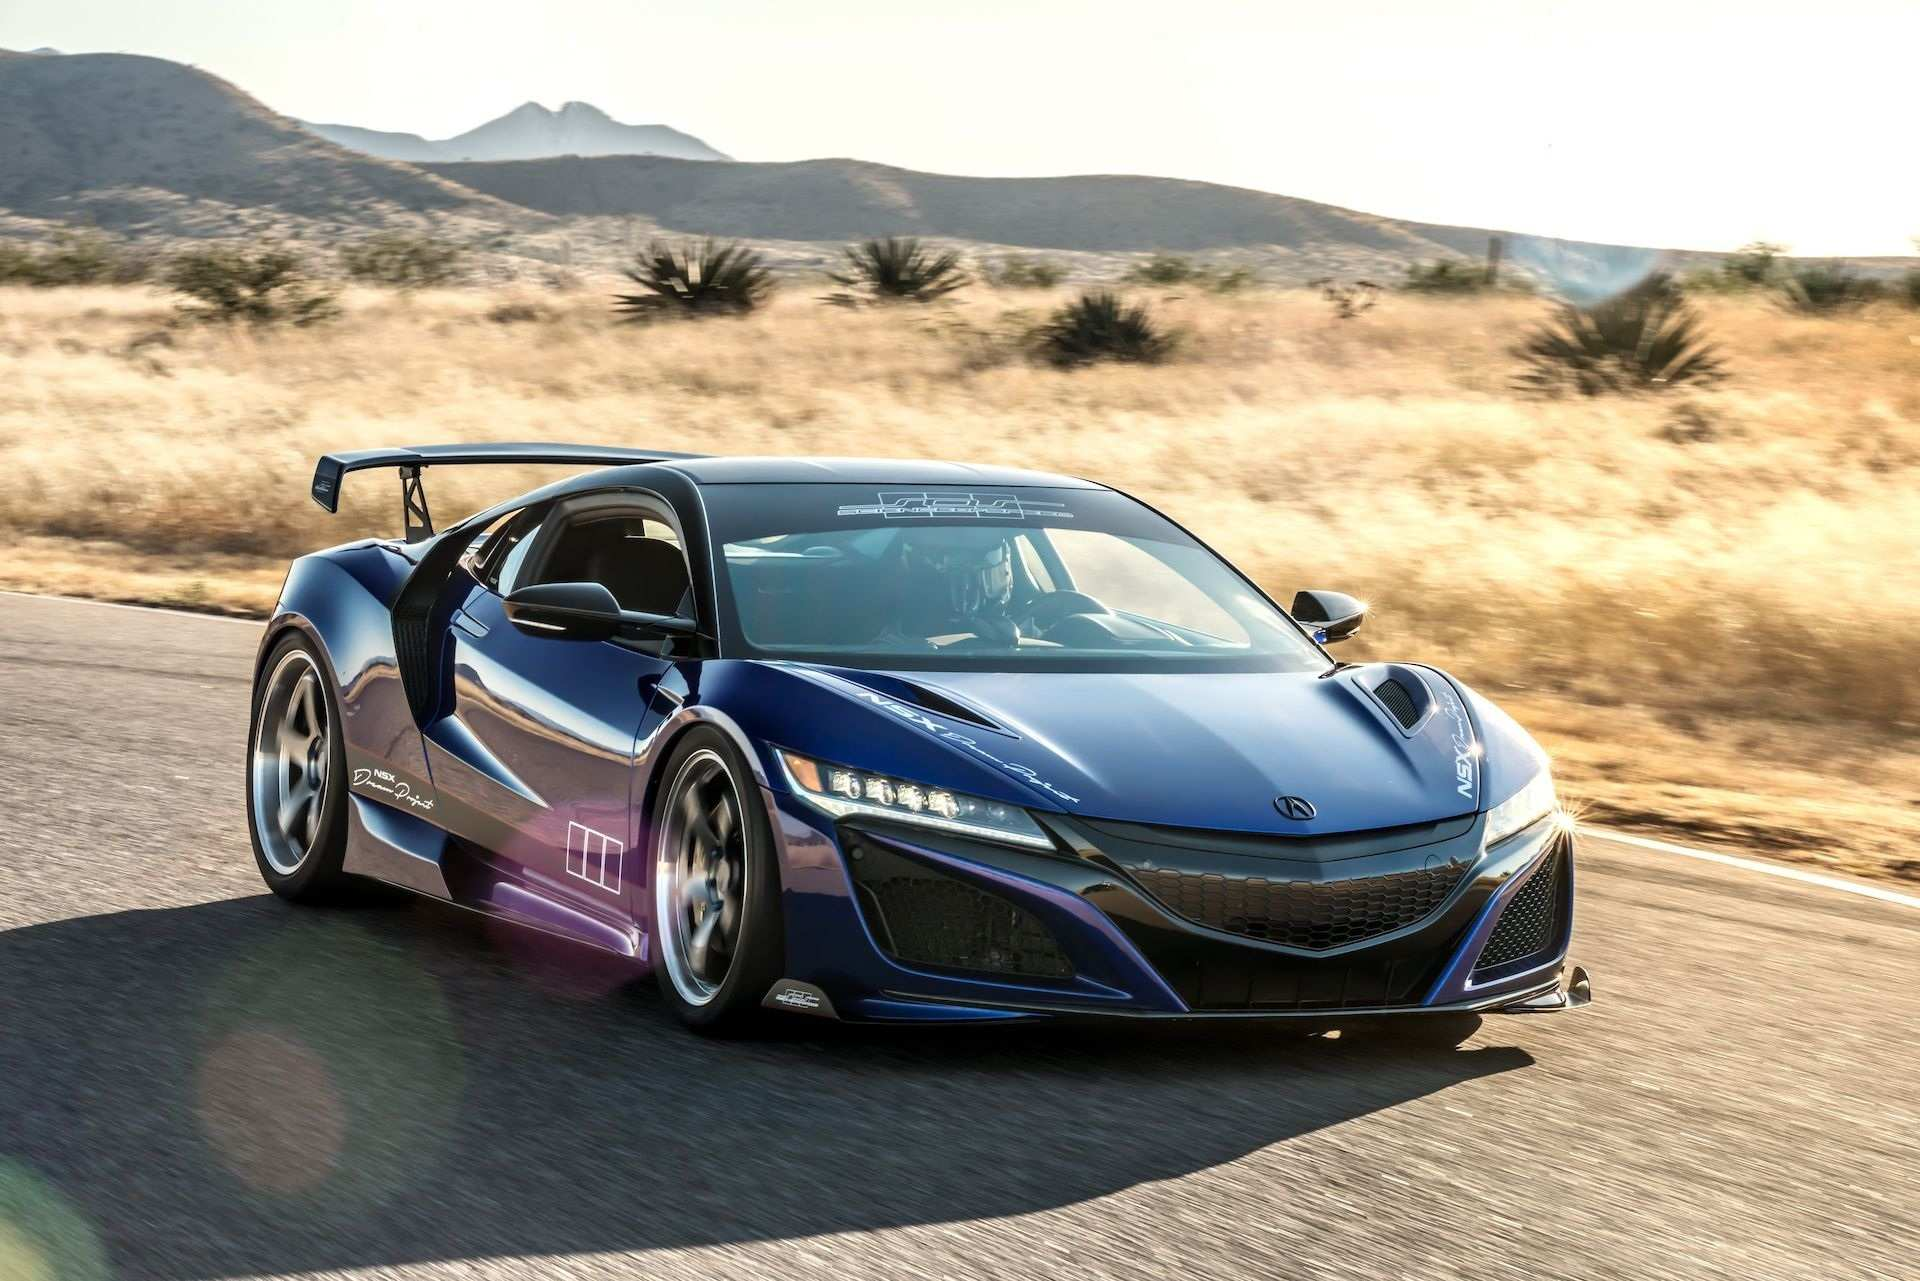 72 New Acura Nsx 2020 Price Model with Acura Nsx 2020 Price